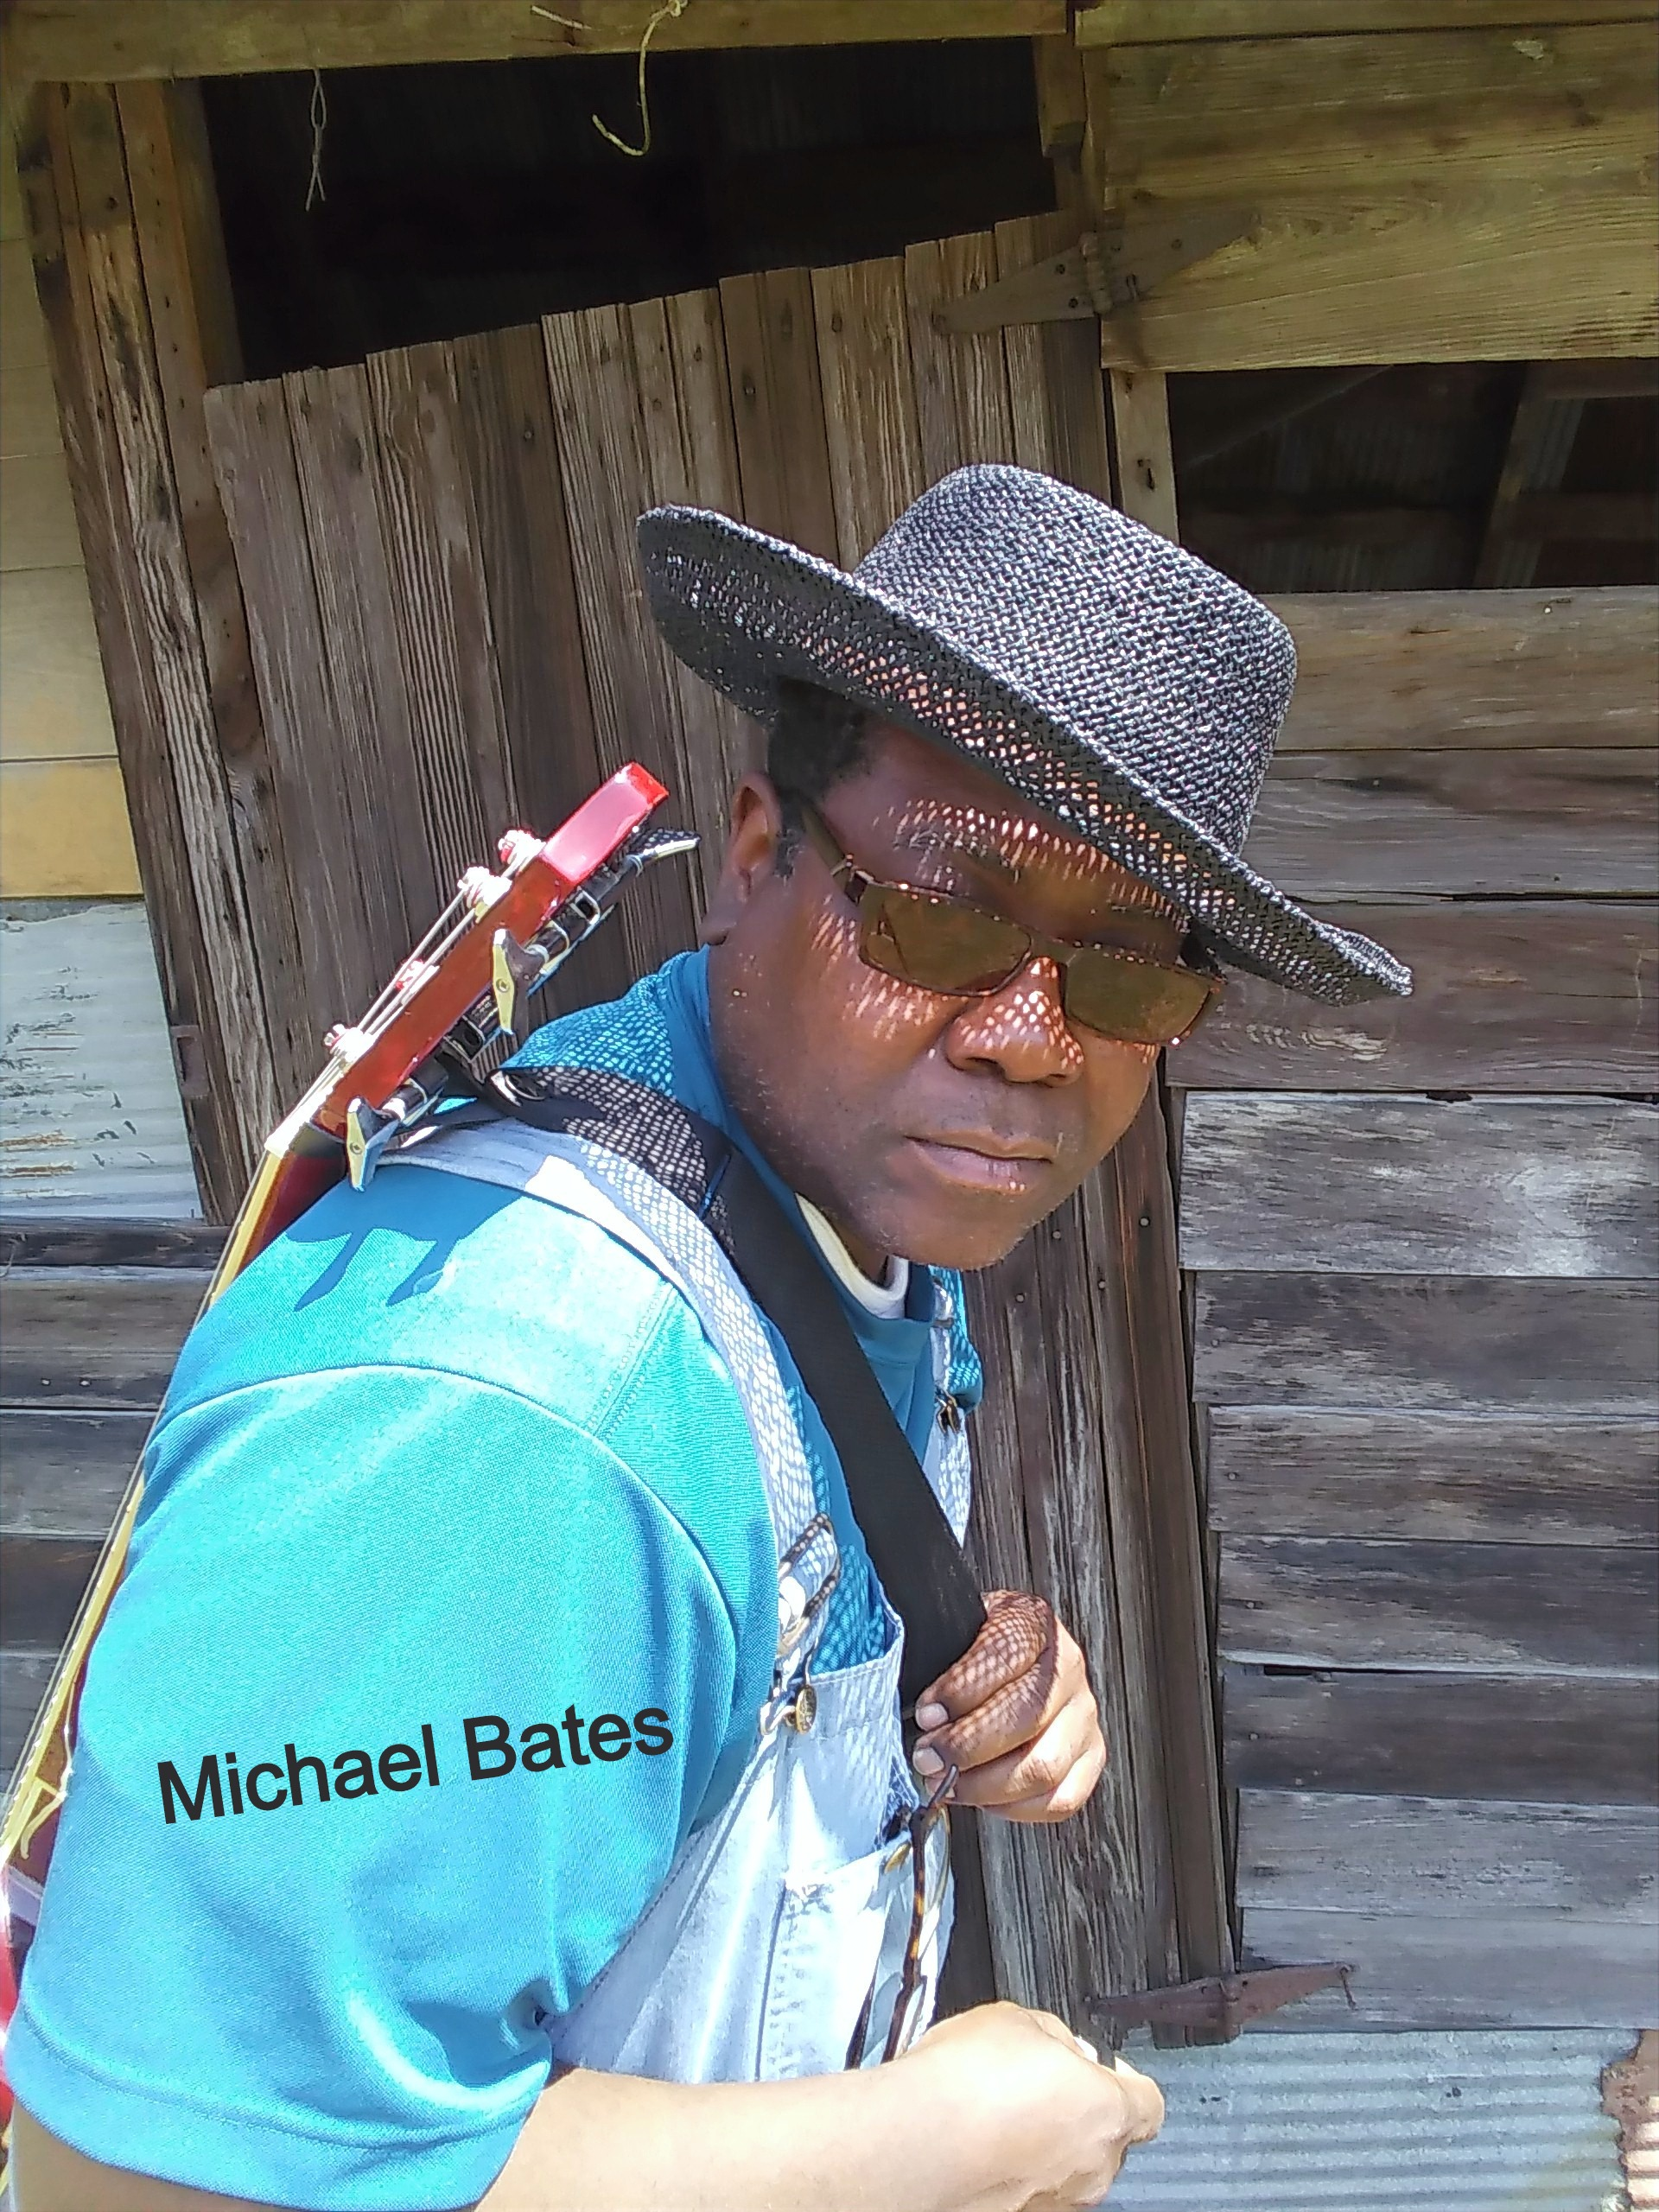 Michael Bates Songs